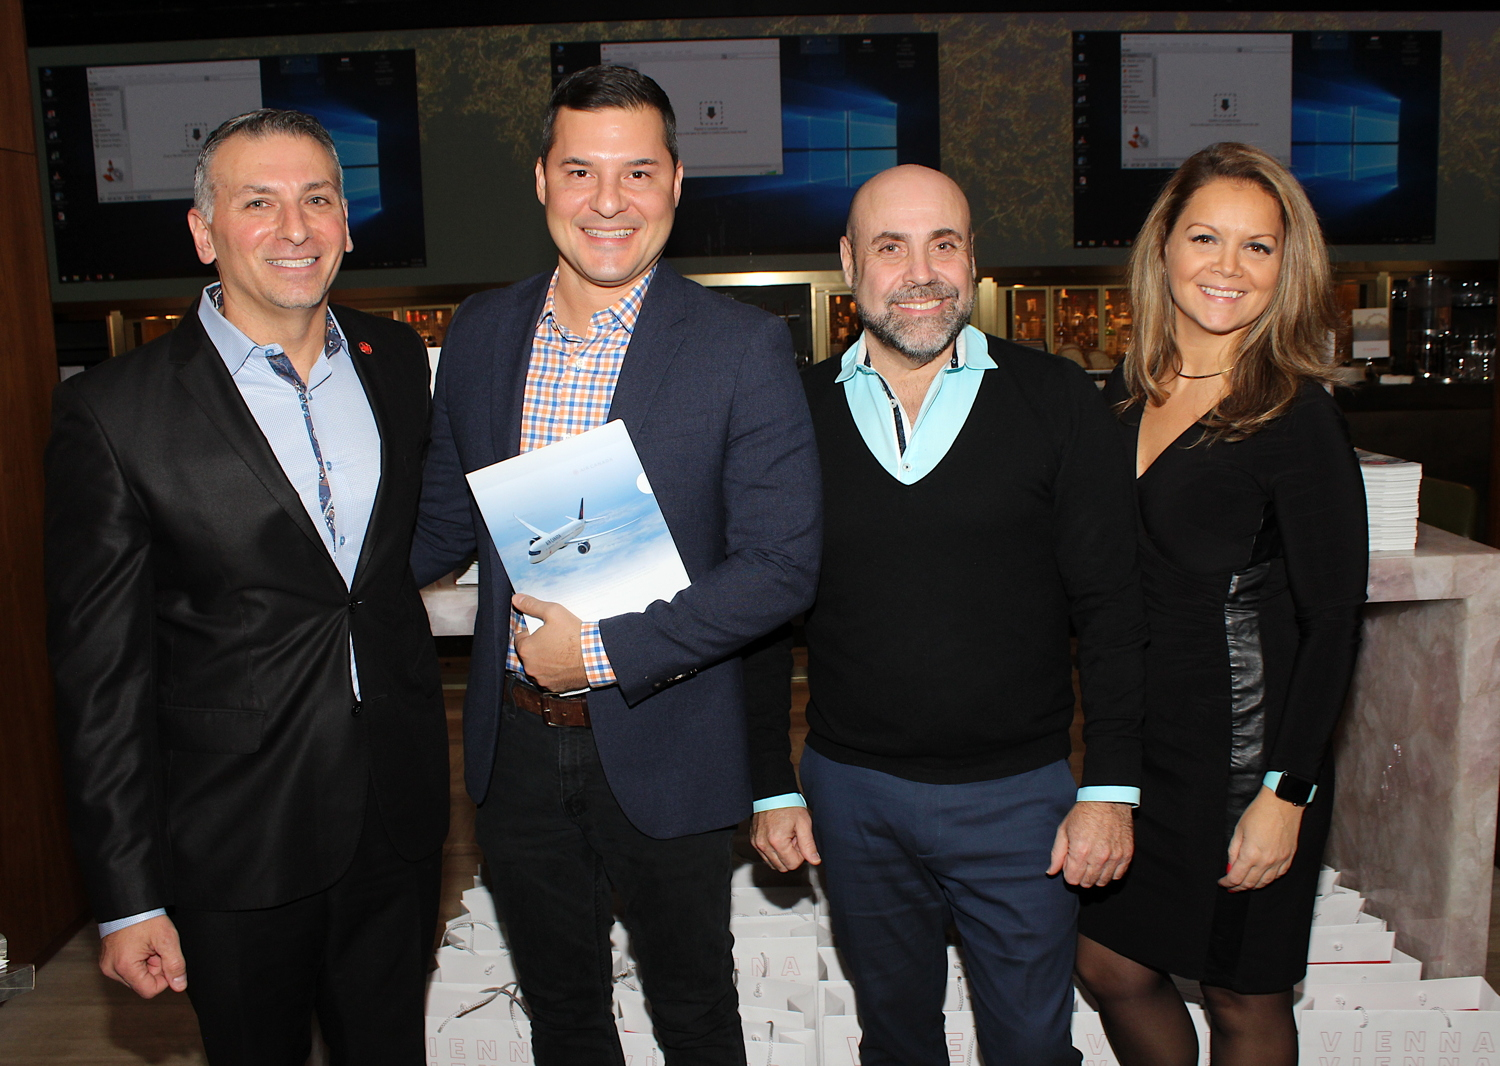 From left: ACV's Nino Montagnese, attendee Ryan Lester, AMPM's Armando Mendonca and Air Canada's Simona Cercel. Lester won the morning's big draw prize: round-trip airfare for two to Vienna courtesy of Air Canada.